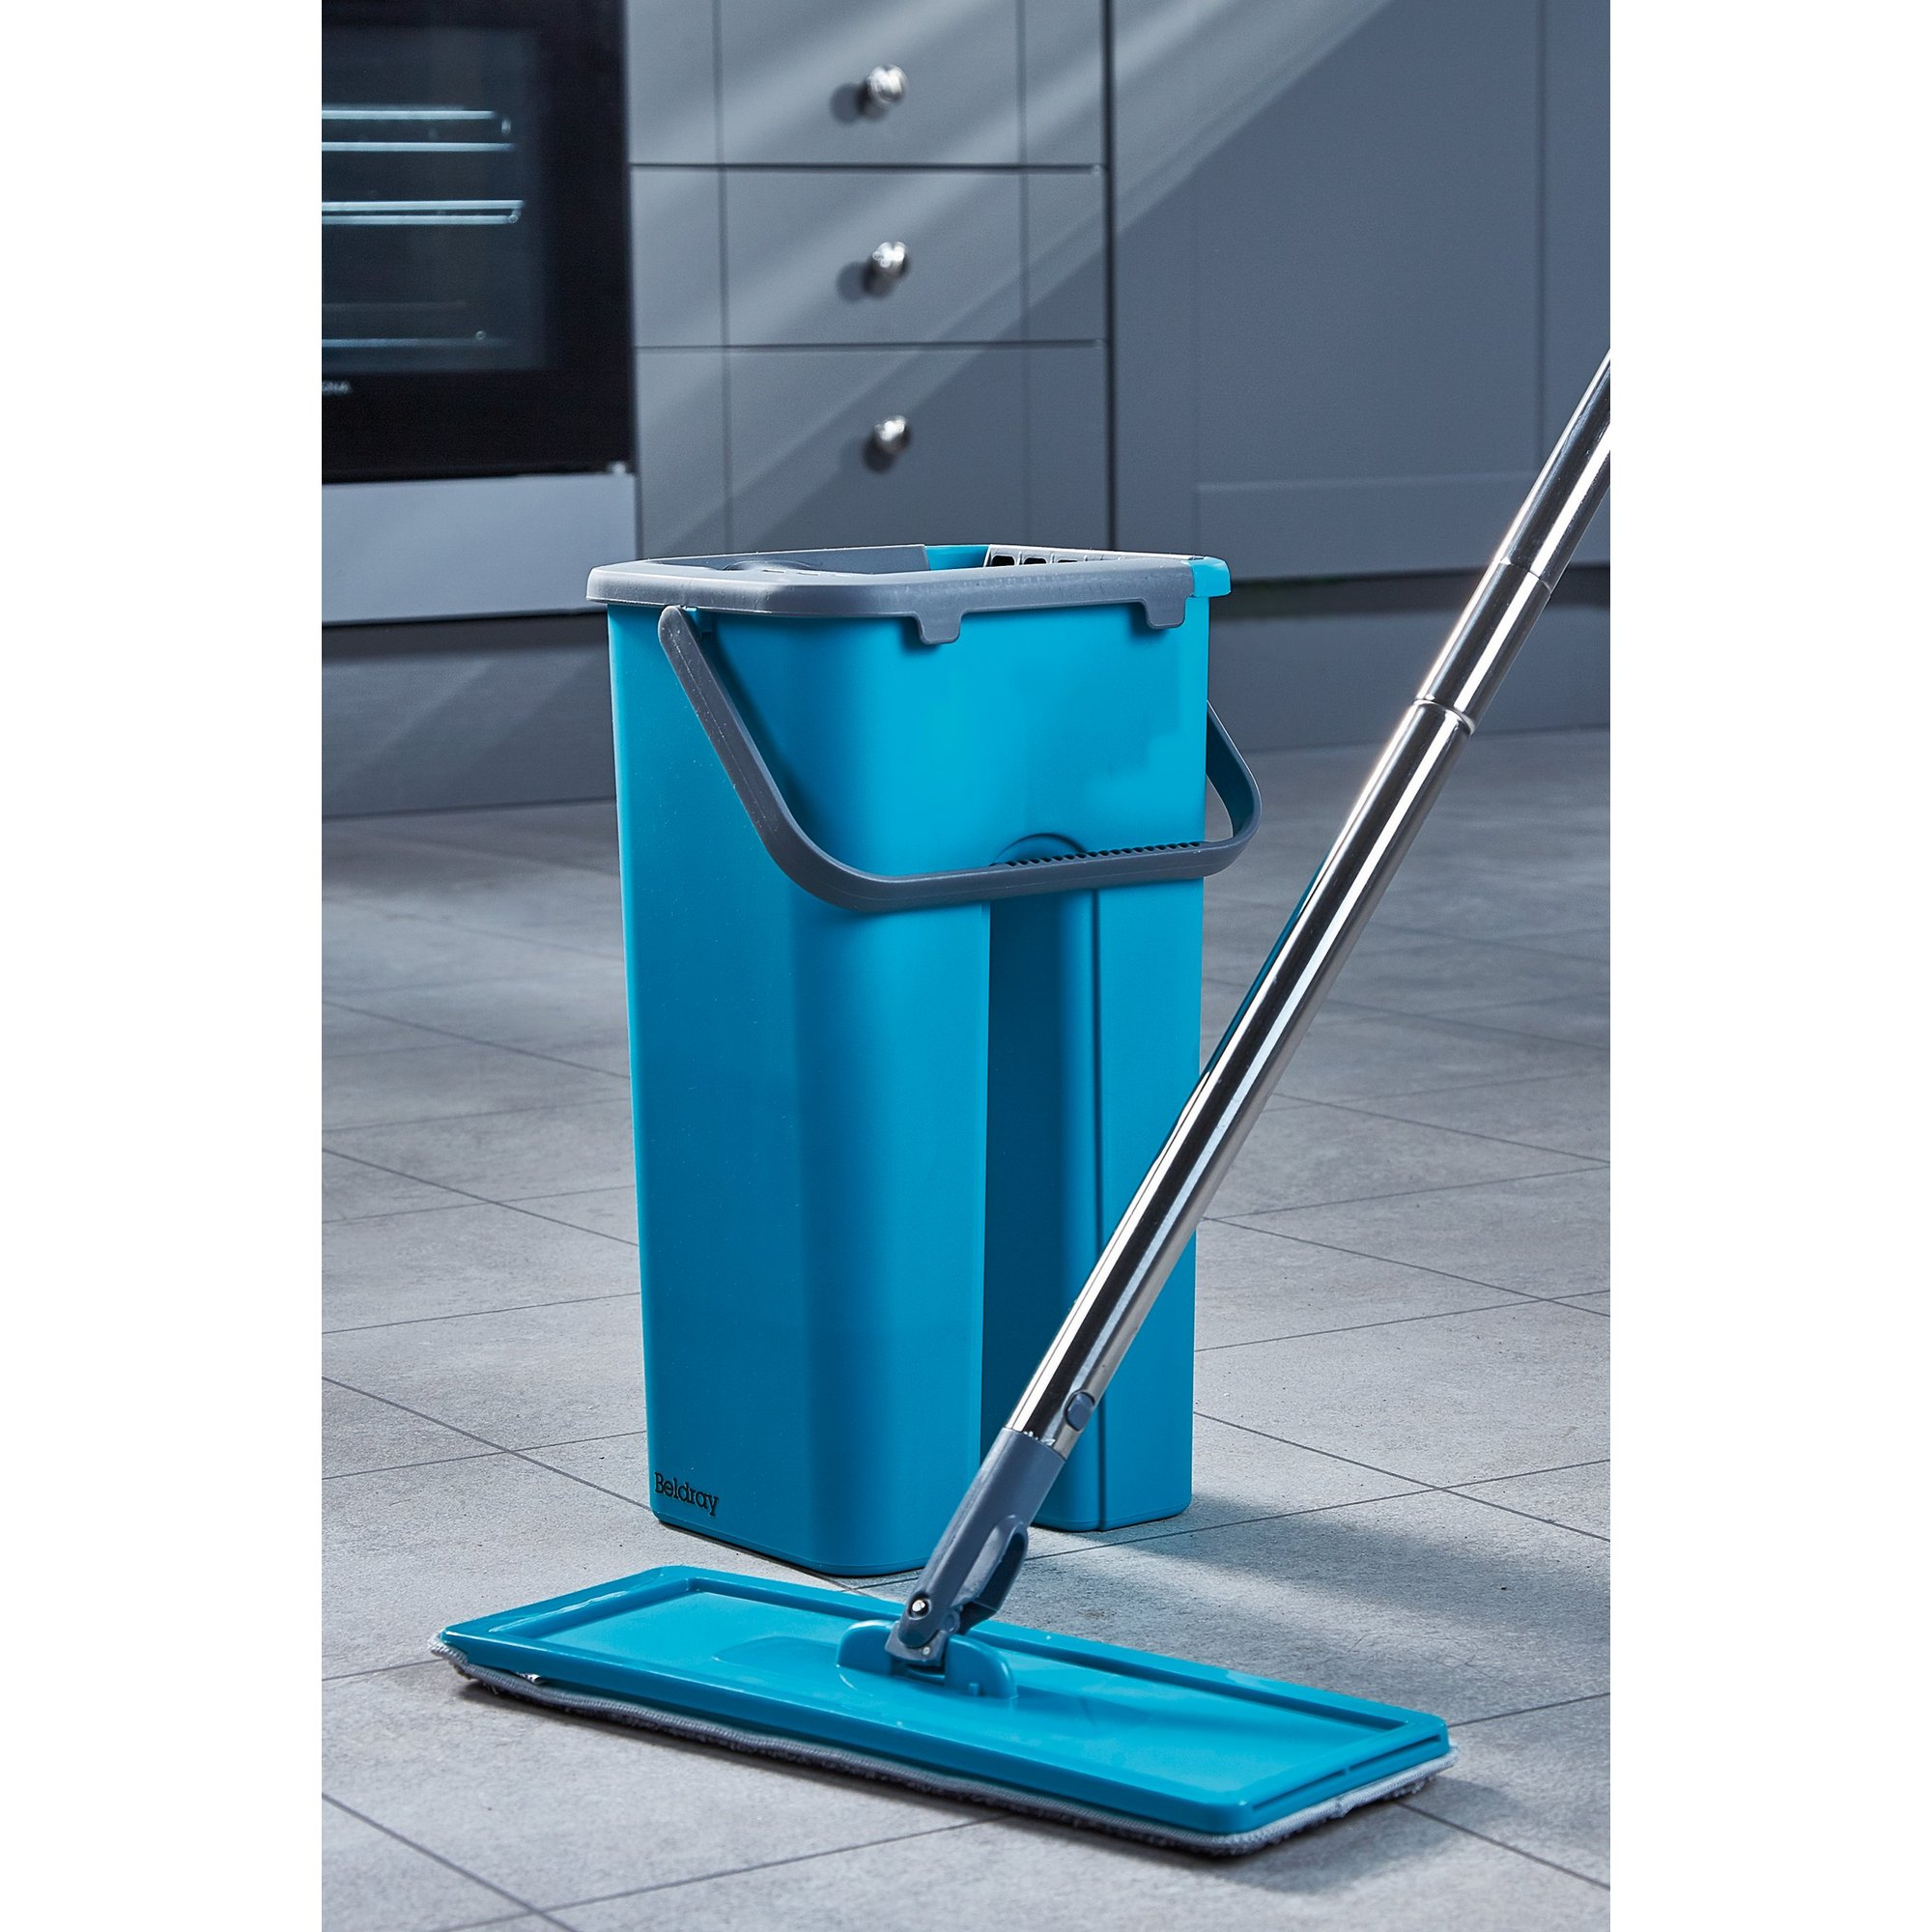 Image of Beldray Flat Mop and Bucket